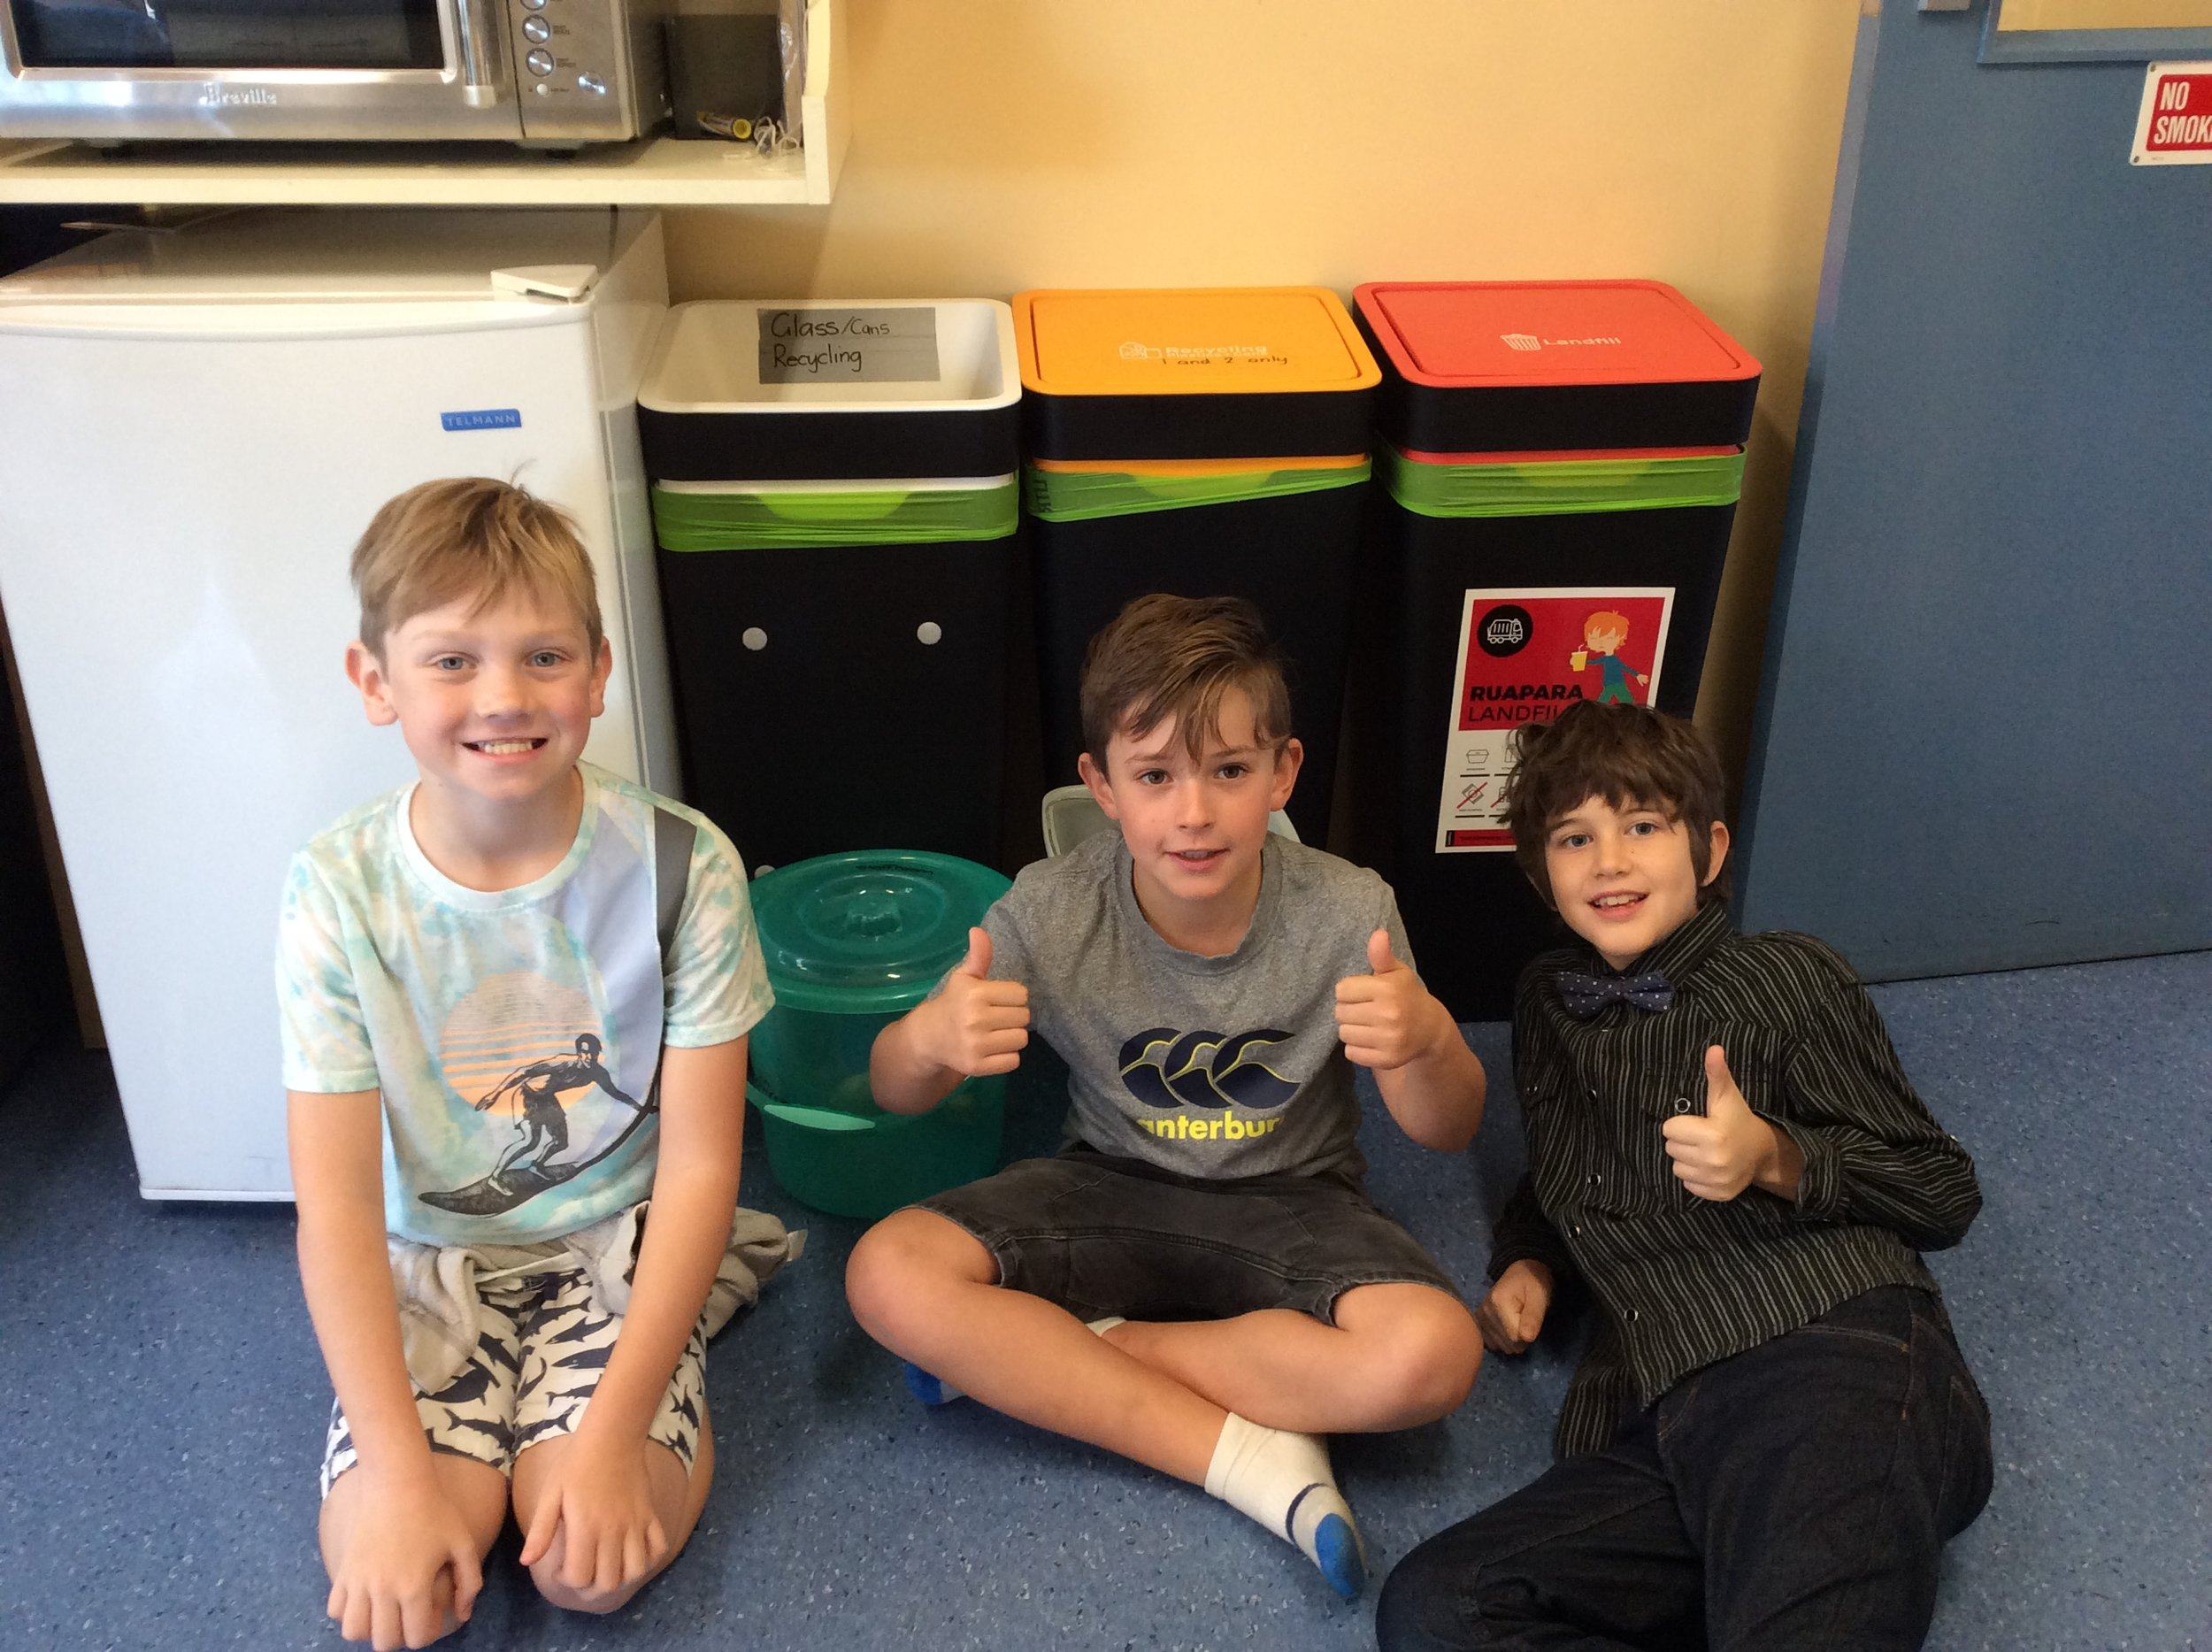 We've been learning about recycling for the school website.